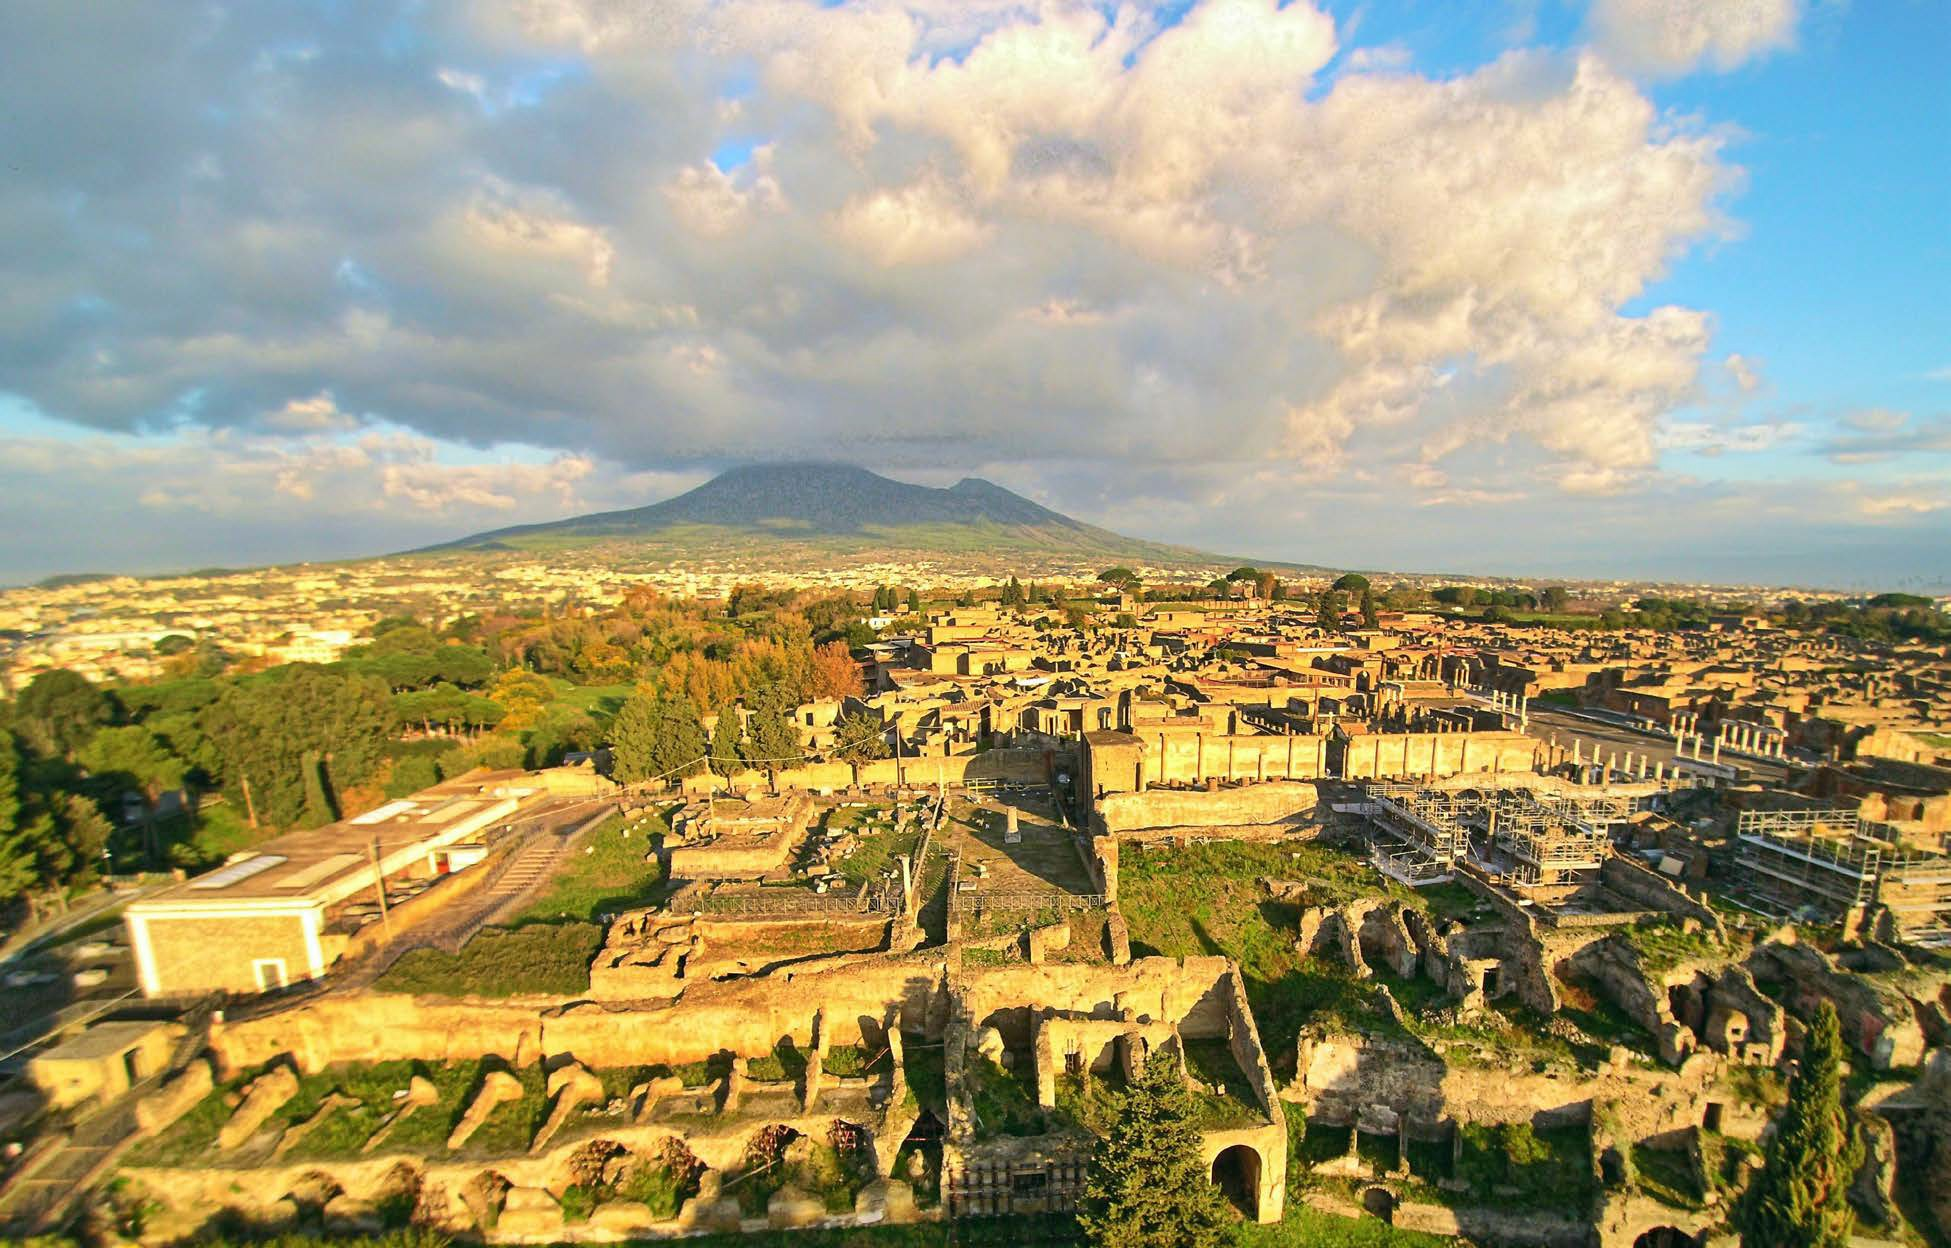 Ruins of Pompeii from above, with Vesuvius in the background